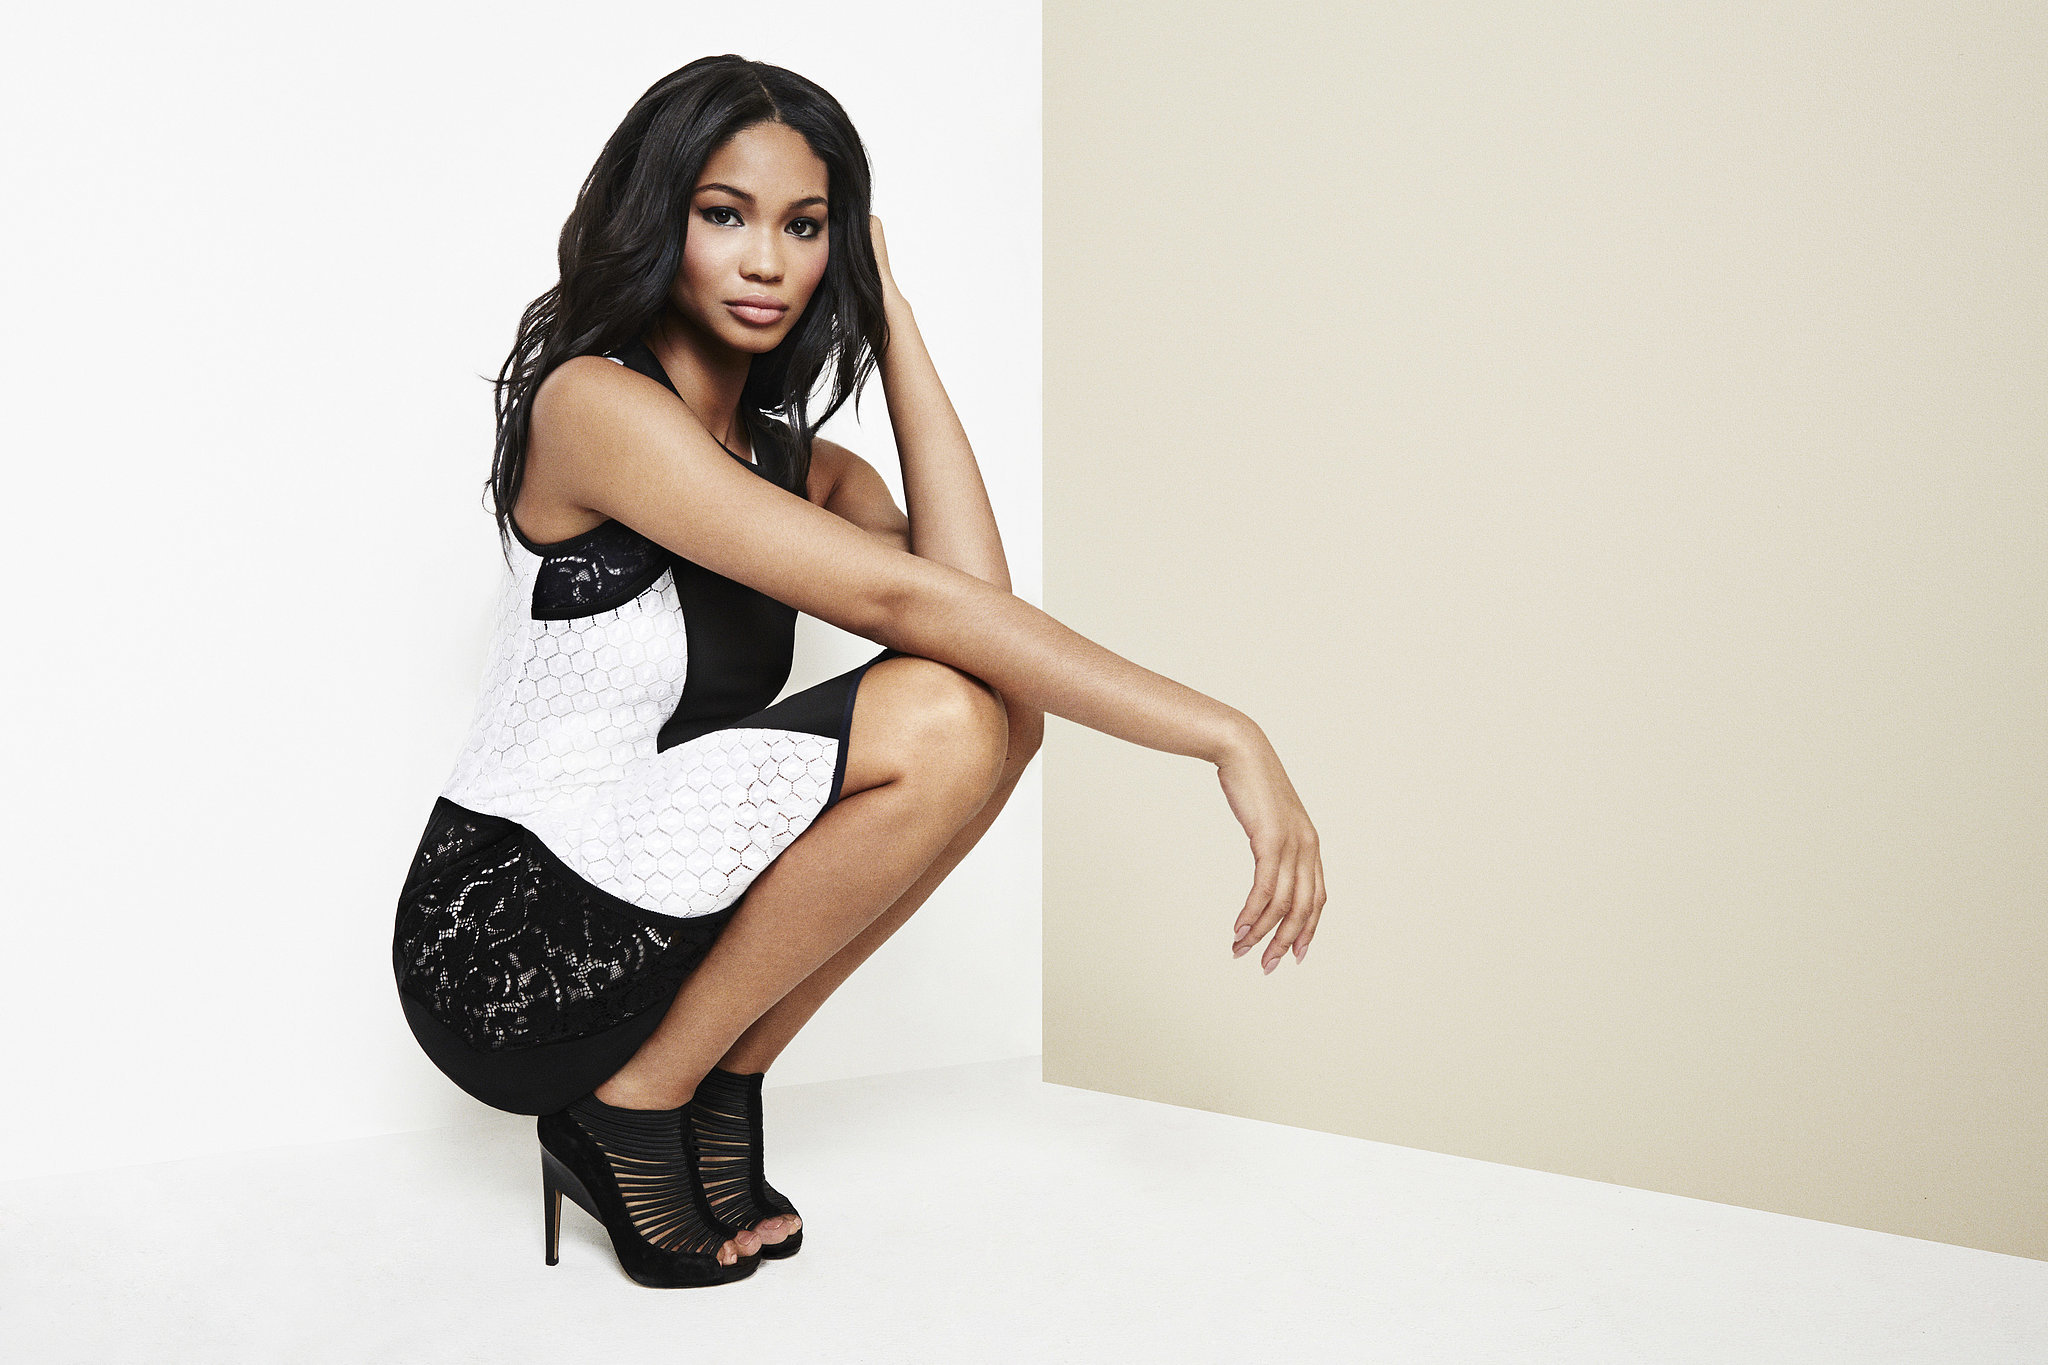 Chanel Iman s Lovelife All About Reaching Dating Goals With Her Partner